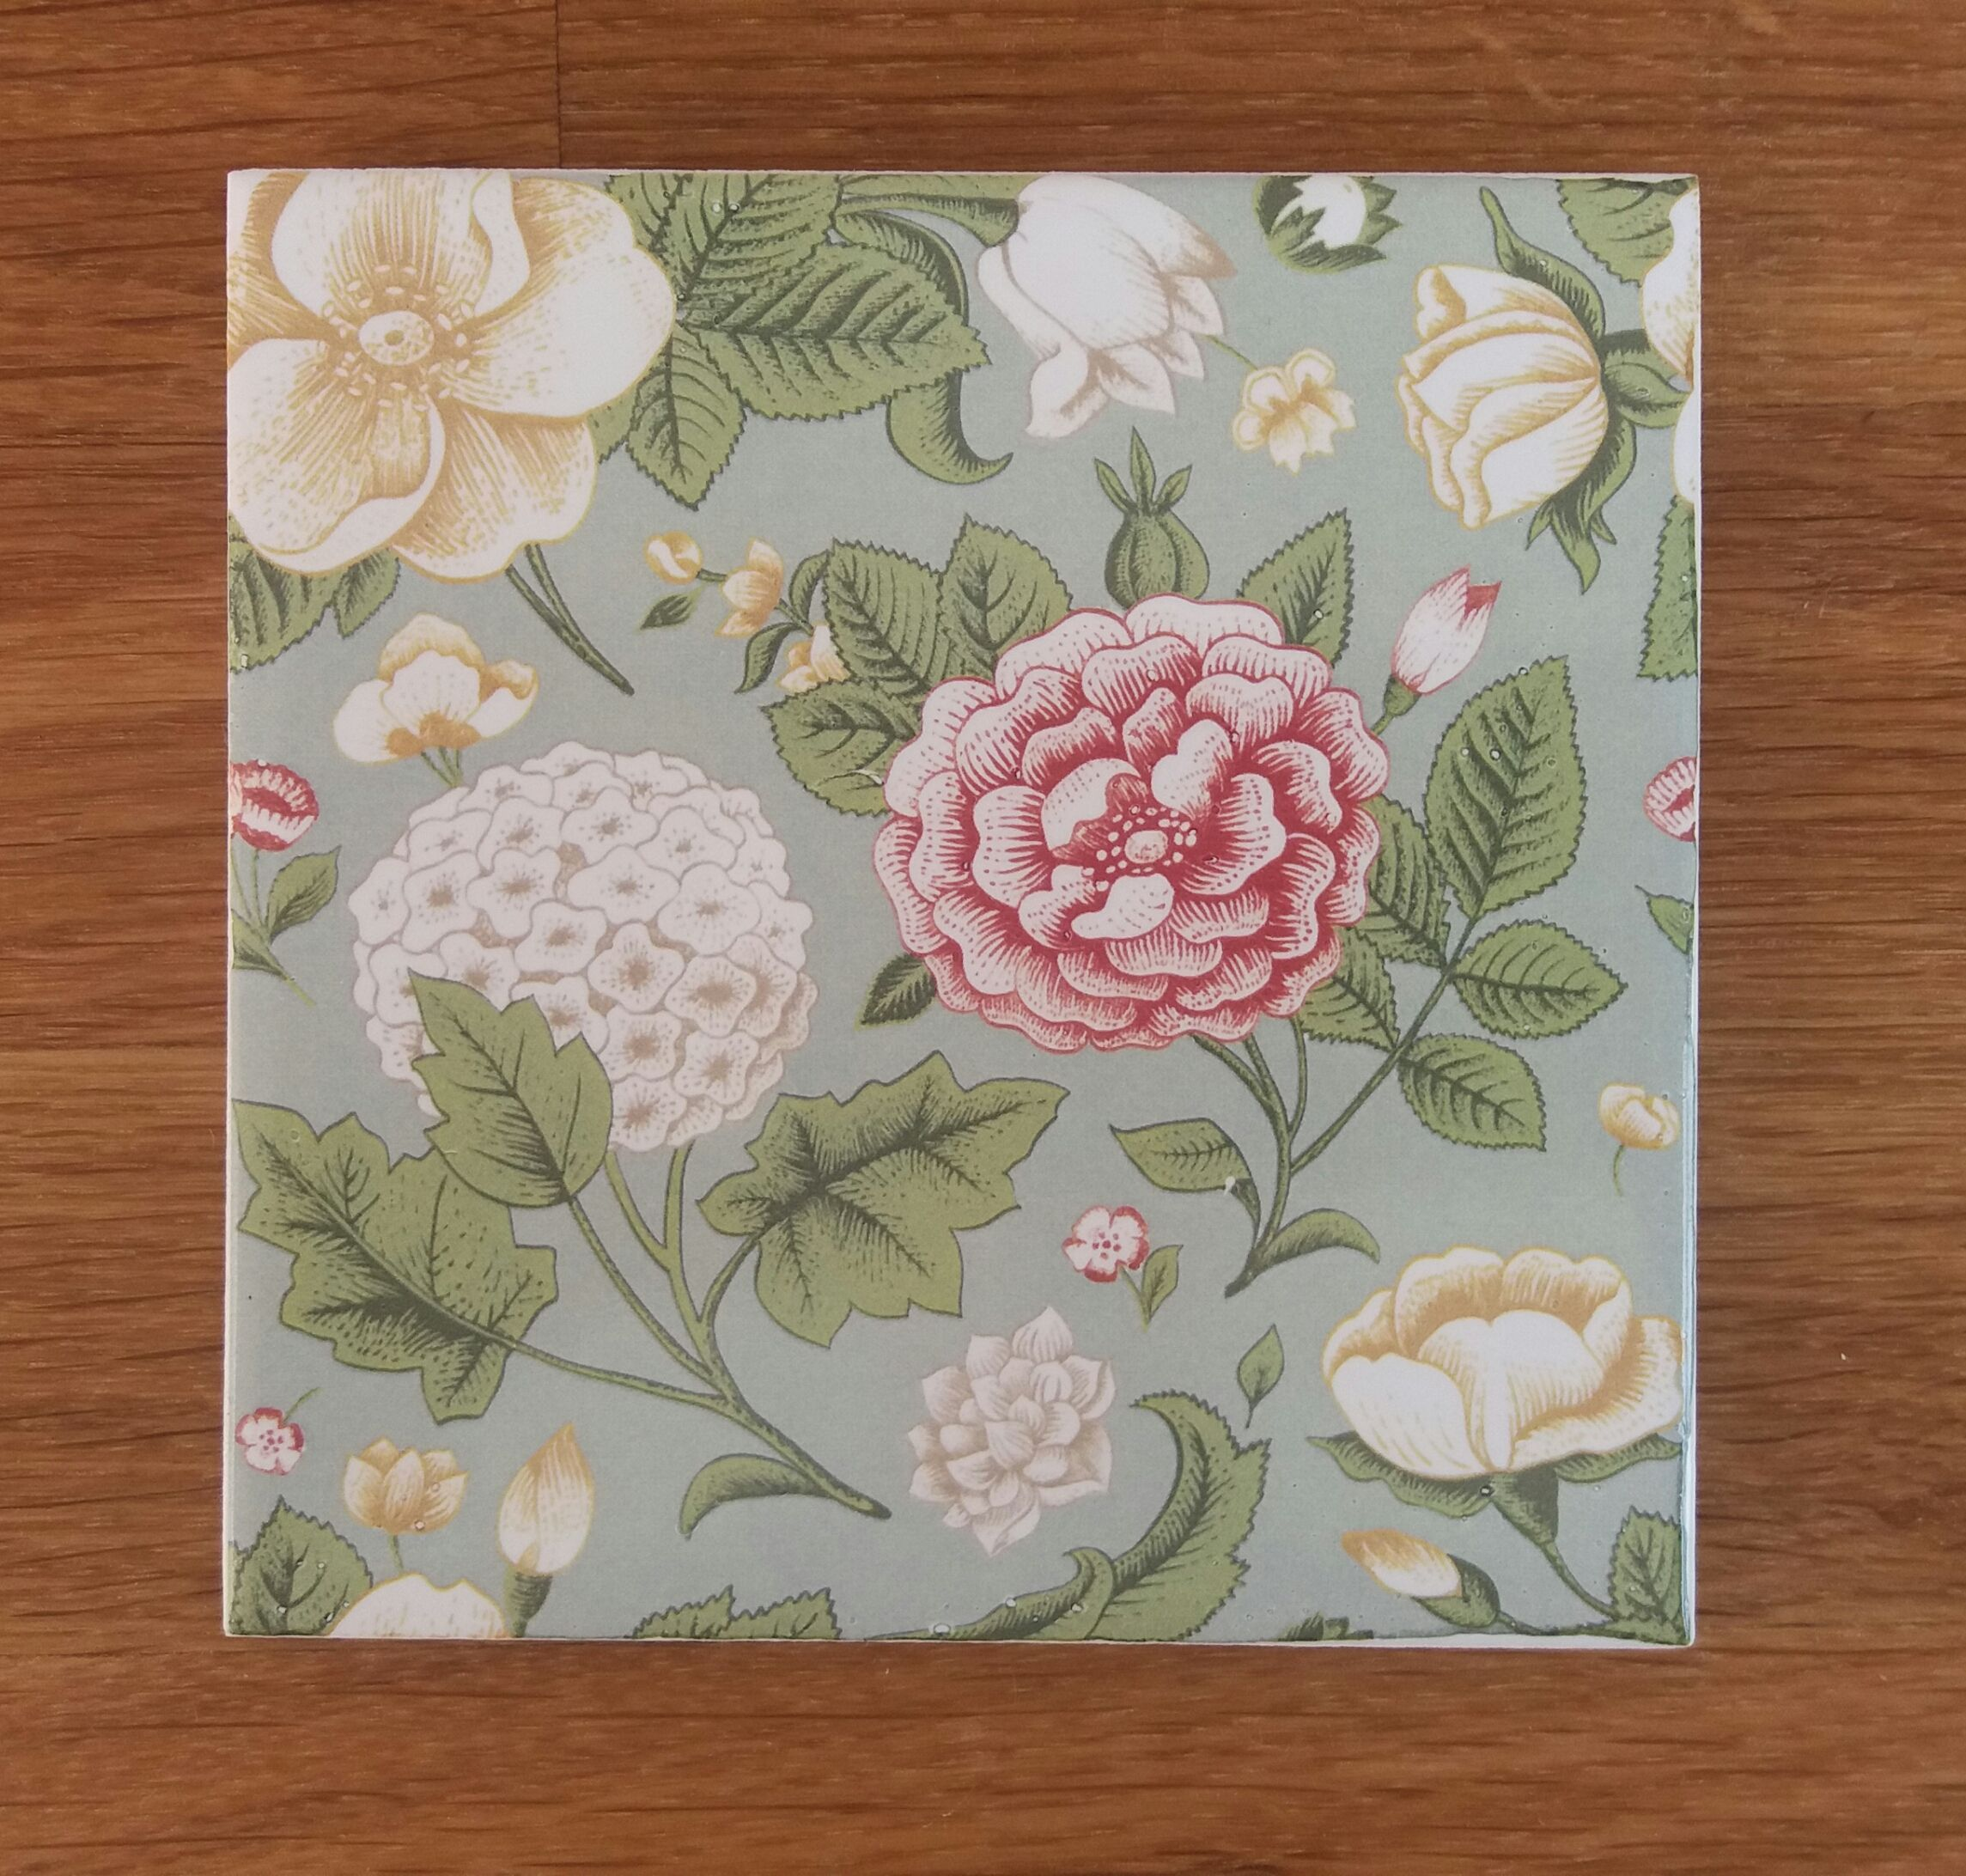 Vintage Style Floral Patterned Wall Tile Ceramic Wall Tiles